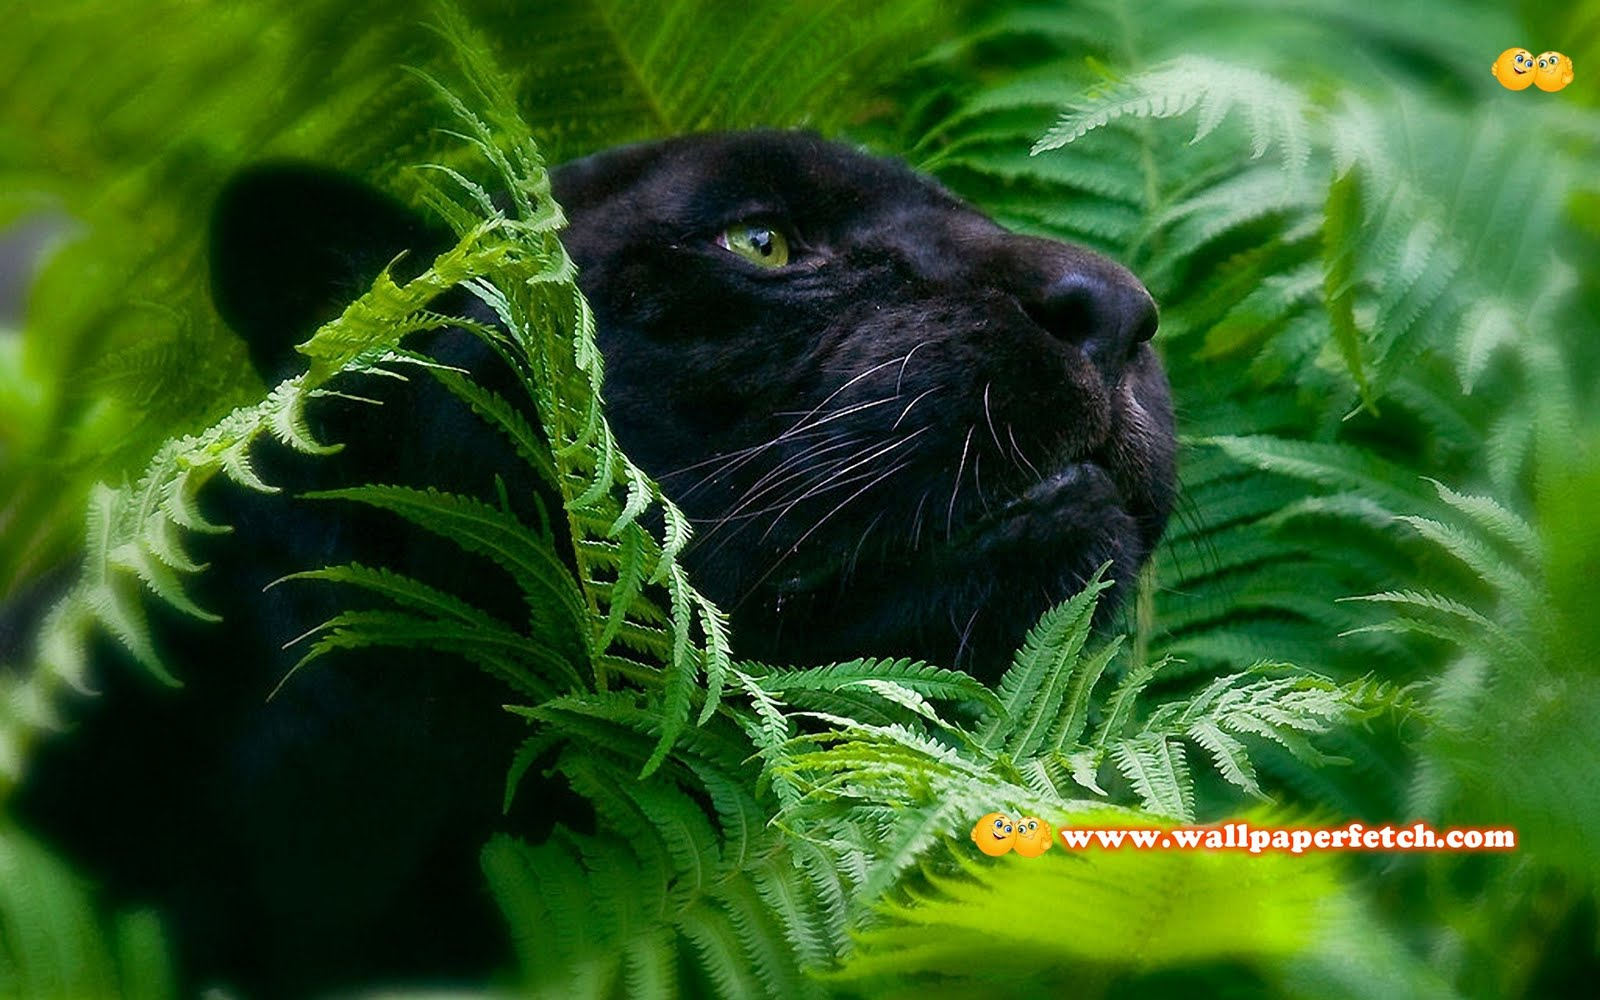 http://4.bp.blogspot.com/-npPYuaexAx4/TvH9RiiKAQI/AAAAAAAABkE/AkHzjsuYXpw/s1600/SuperPack_Beautiful_Animals_HD_Wallpapers_Part_4.37.jpg